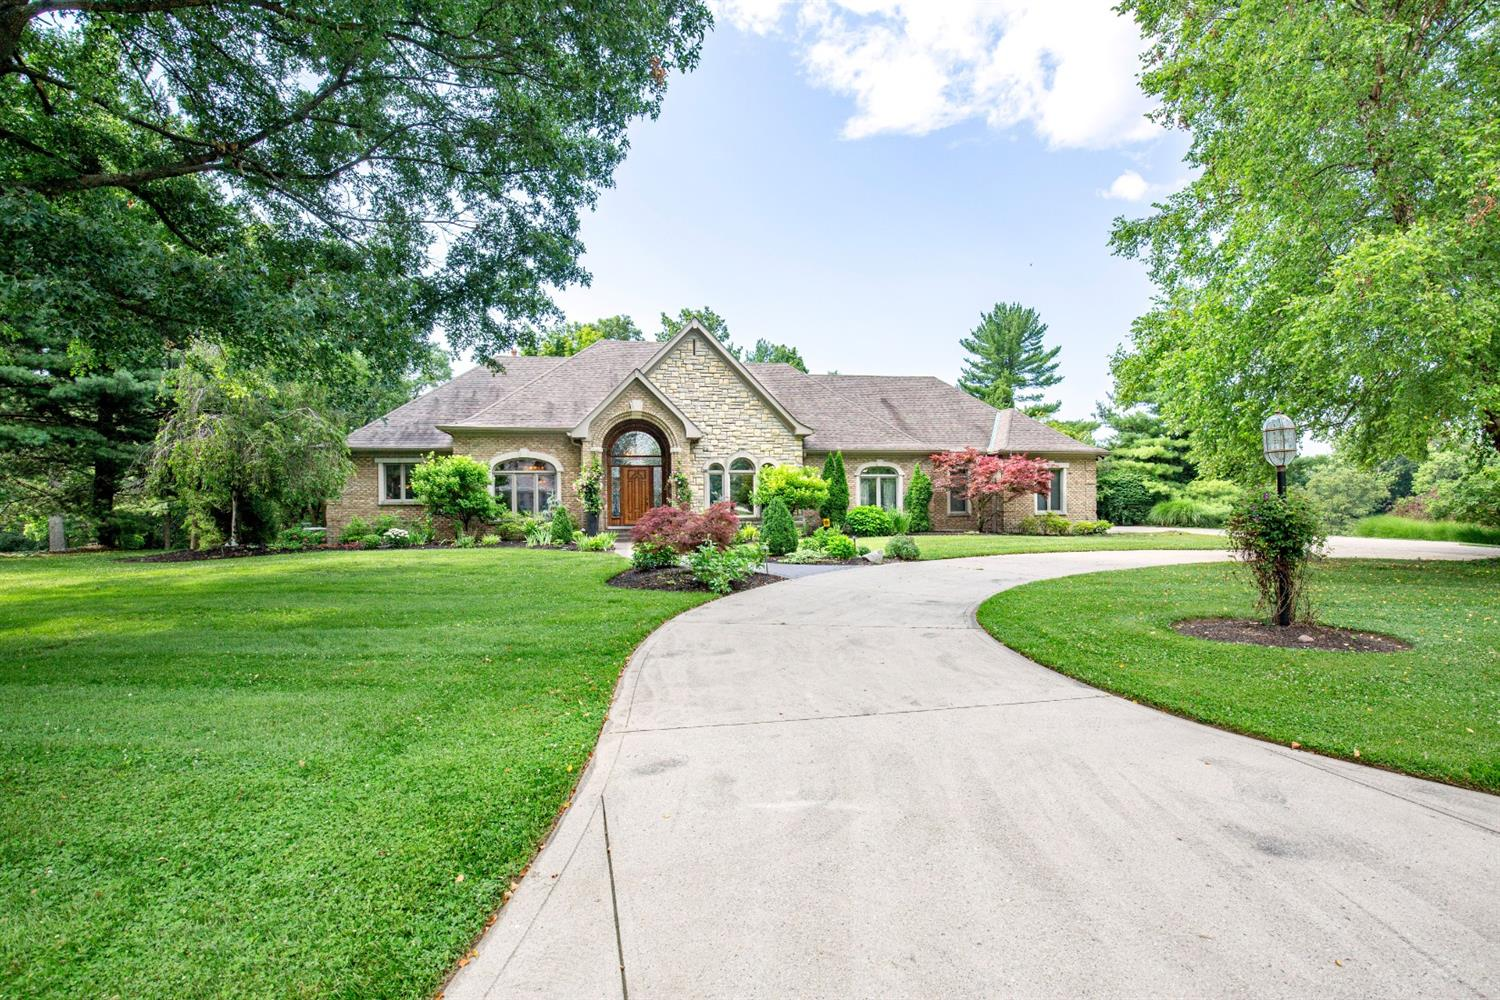 5585 Boomer Road, Green Twp, Ohio 45247, 4 Bedrooms Bedrooms, 15 Rooms Rooms,4 BathroomsBathrooms,Single Family Residence,For Sale,Boomer,1718134